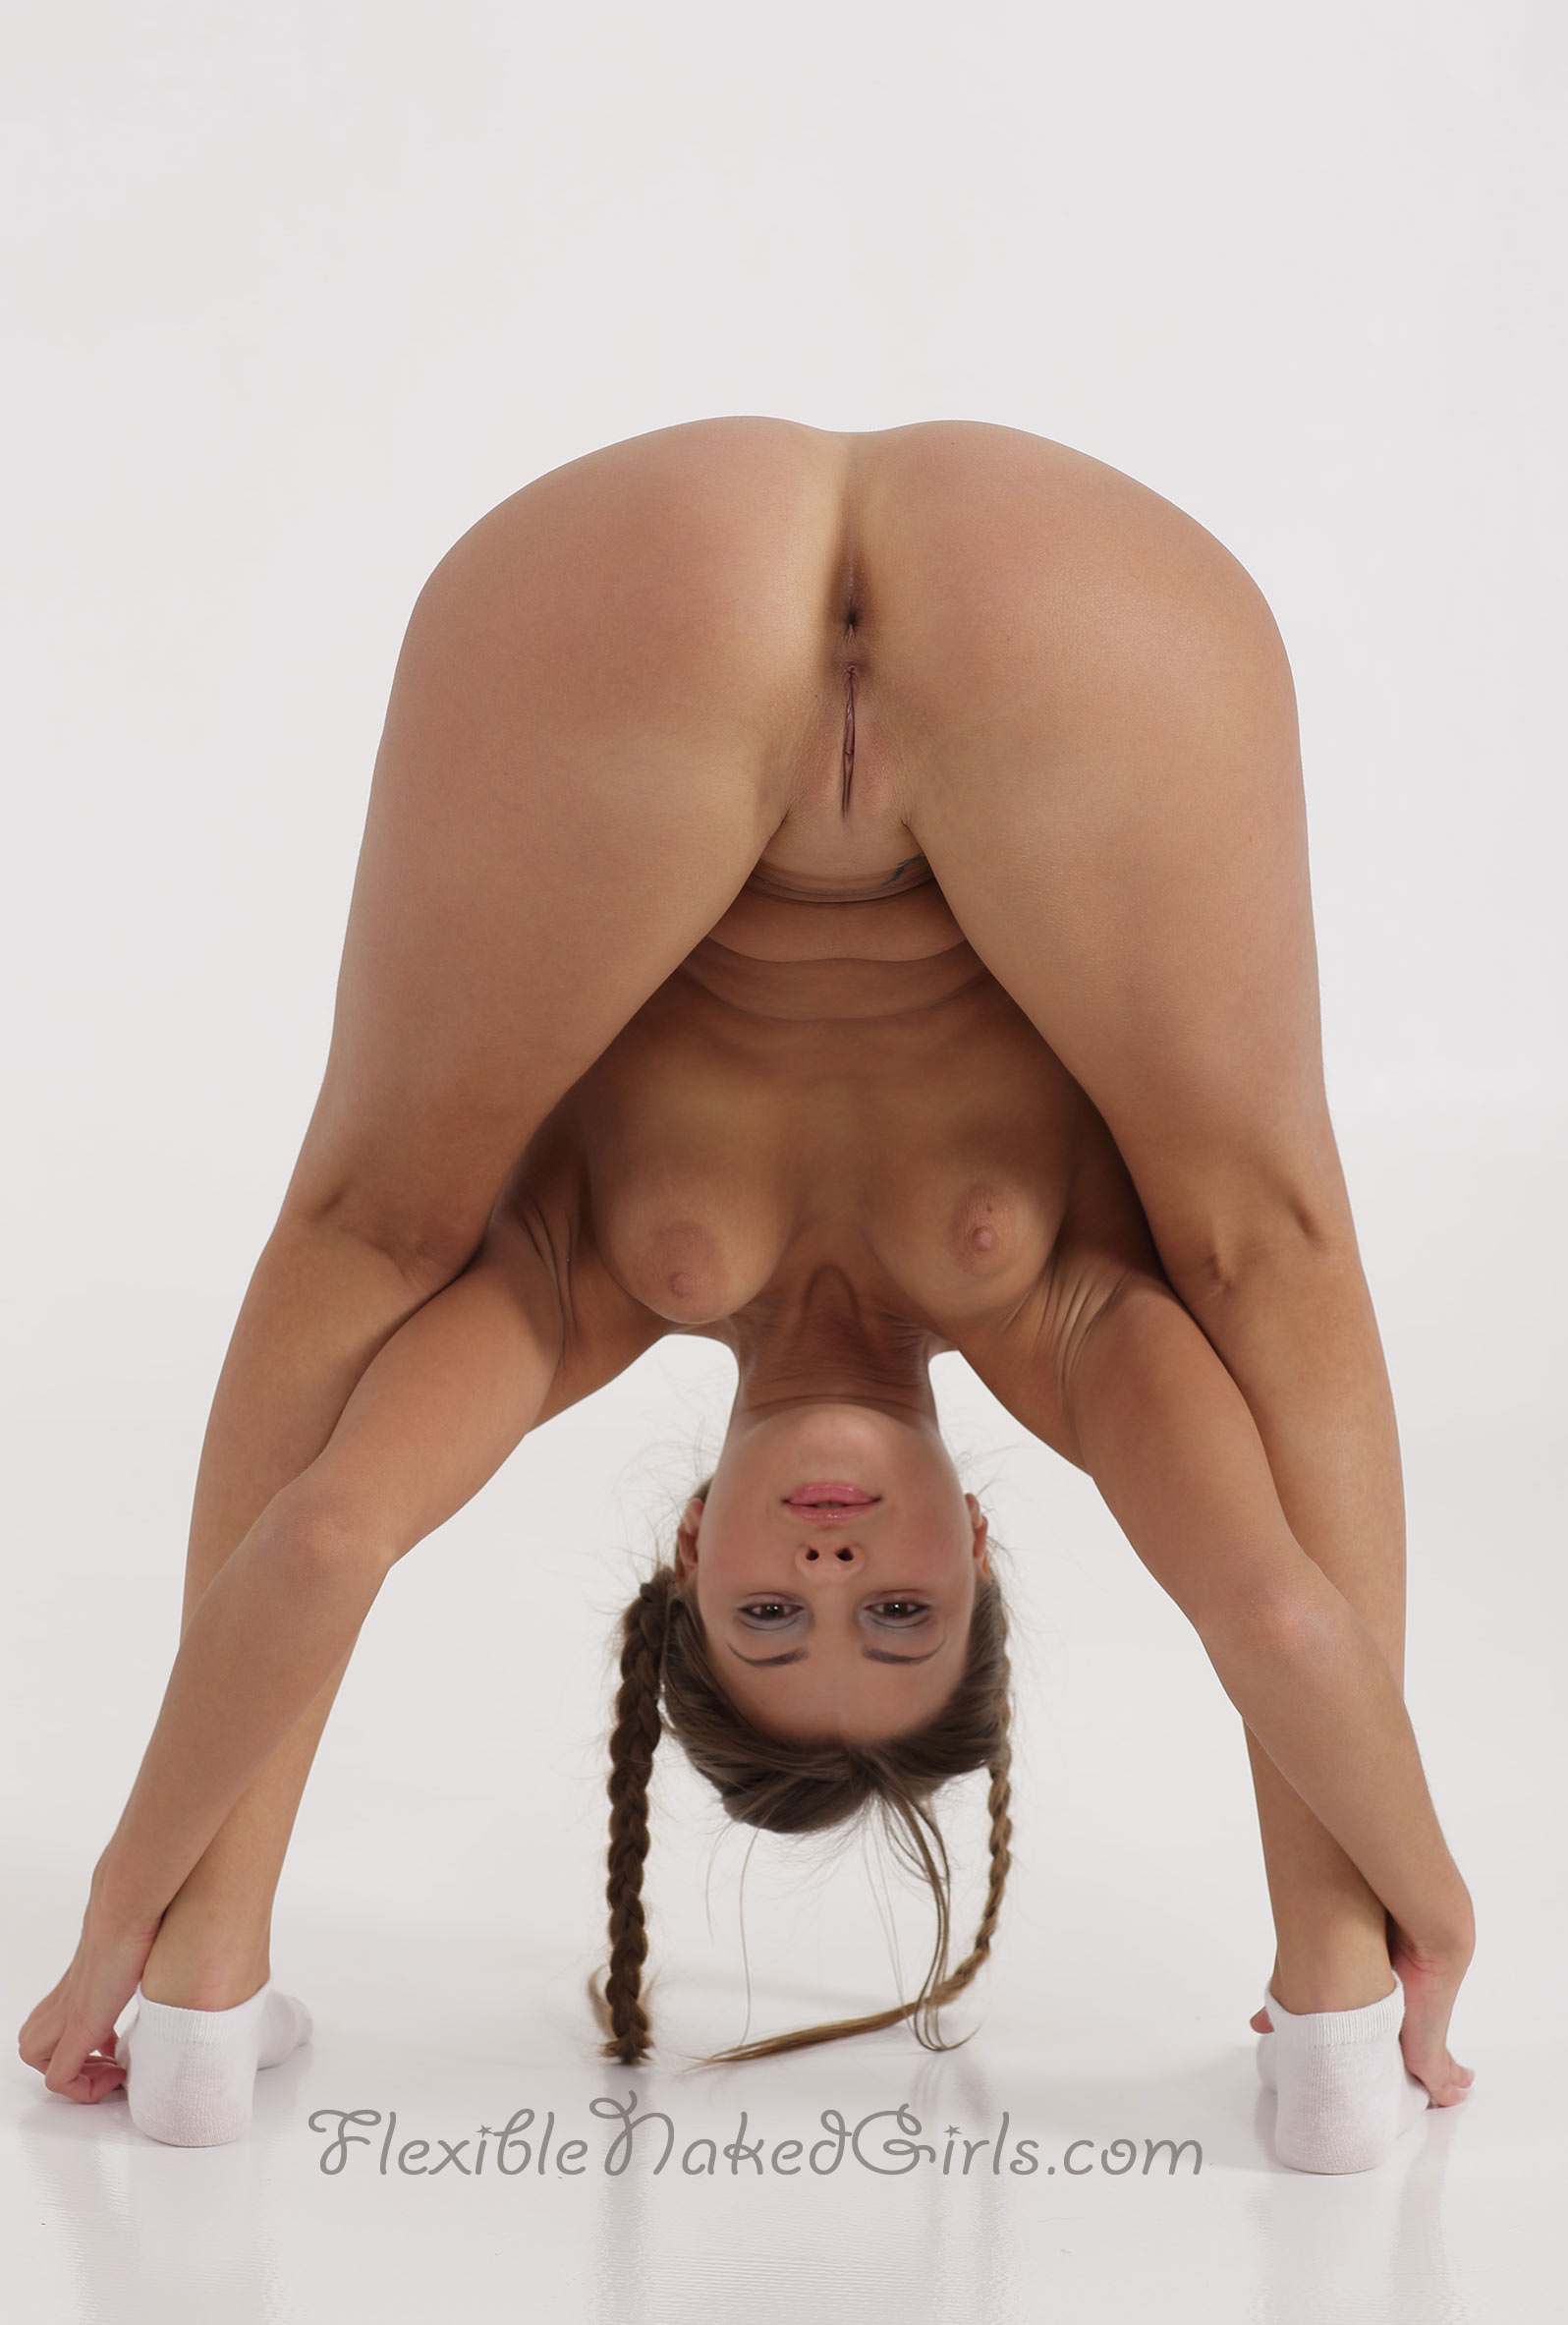 big asses flexible naked women